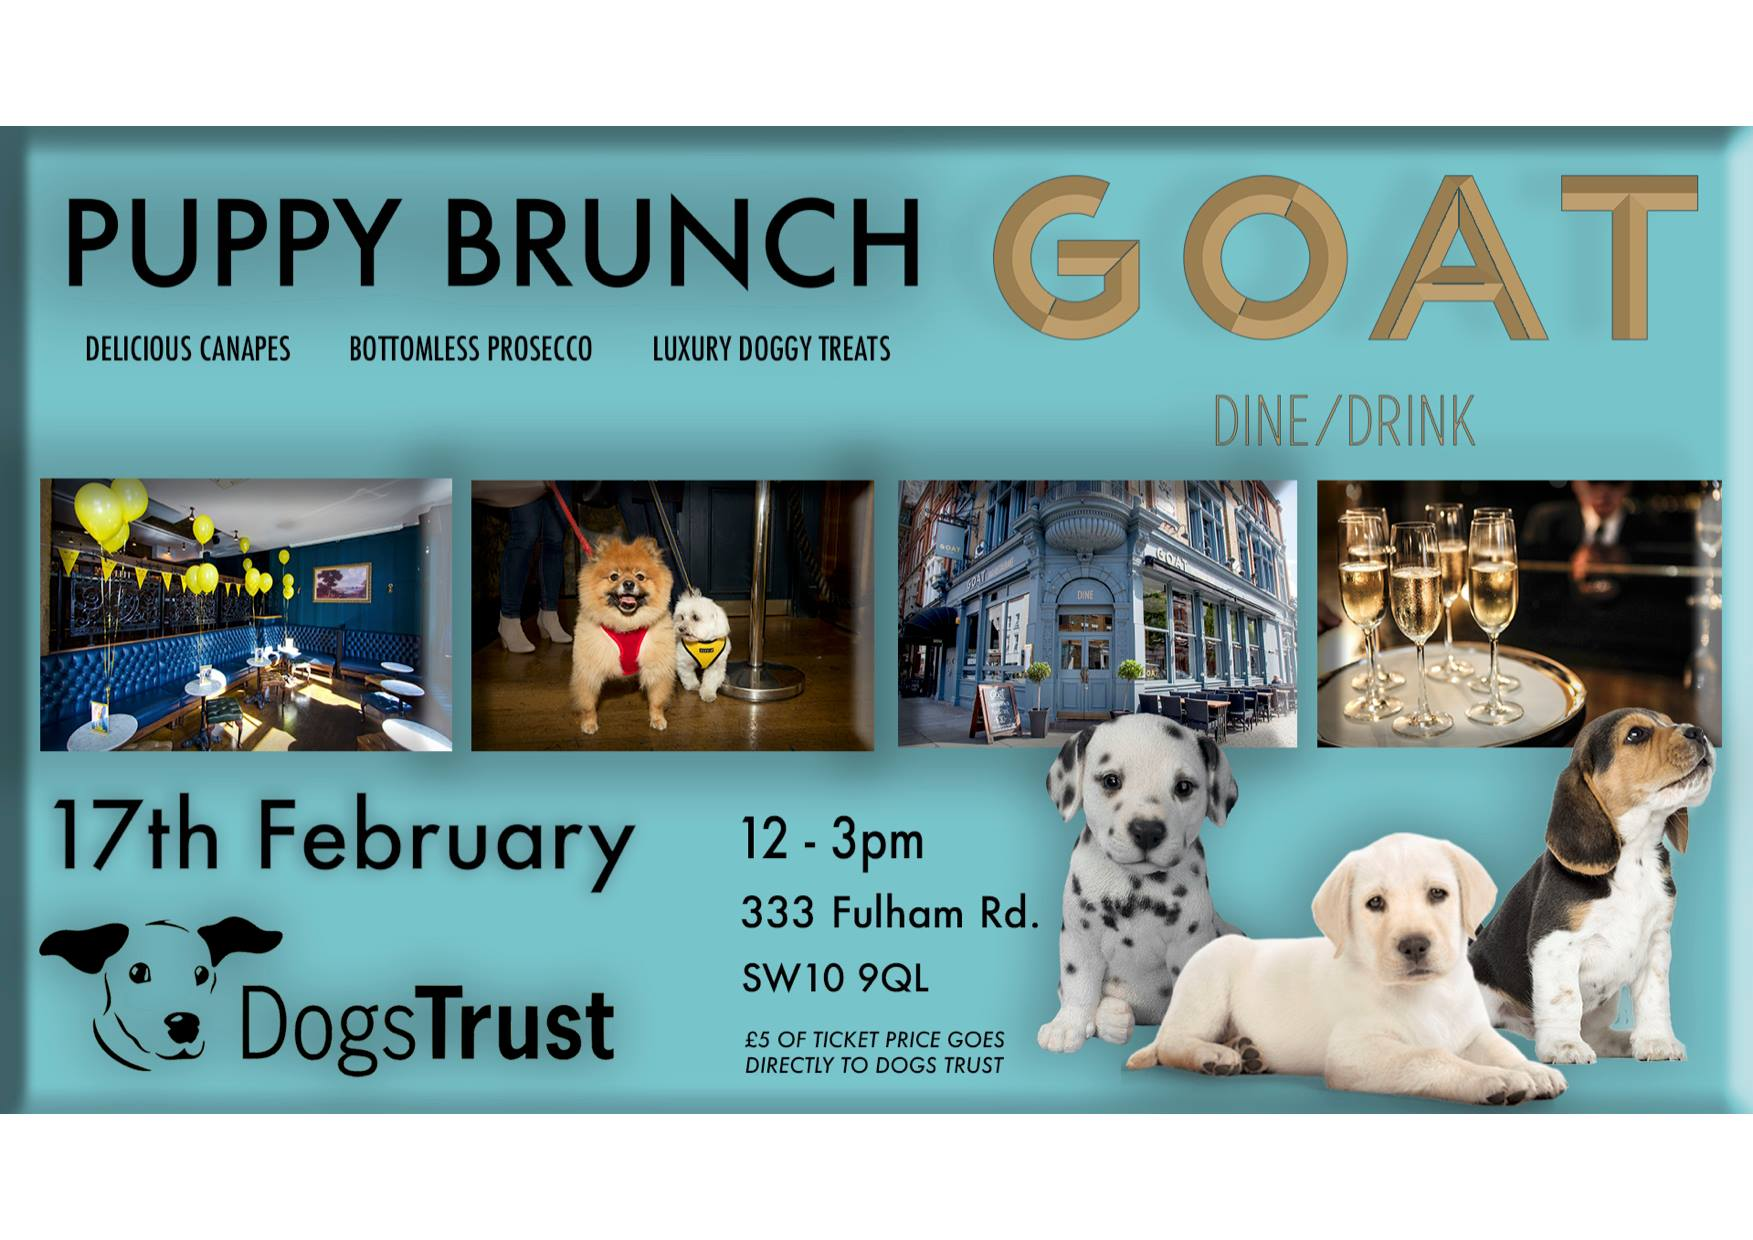 Puppy Brunch at GOAT